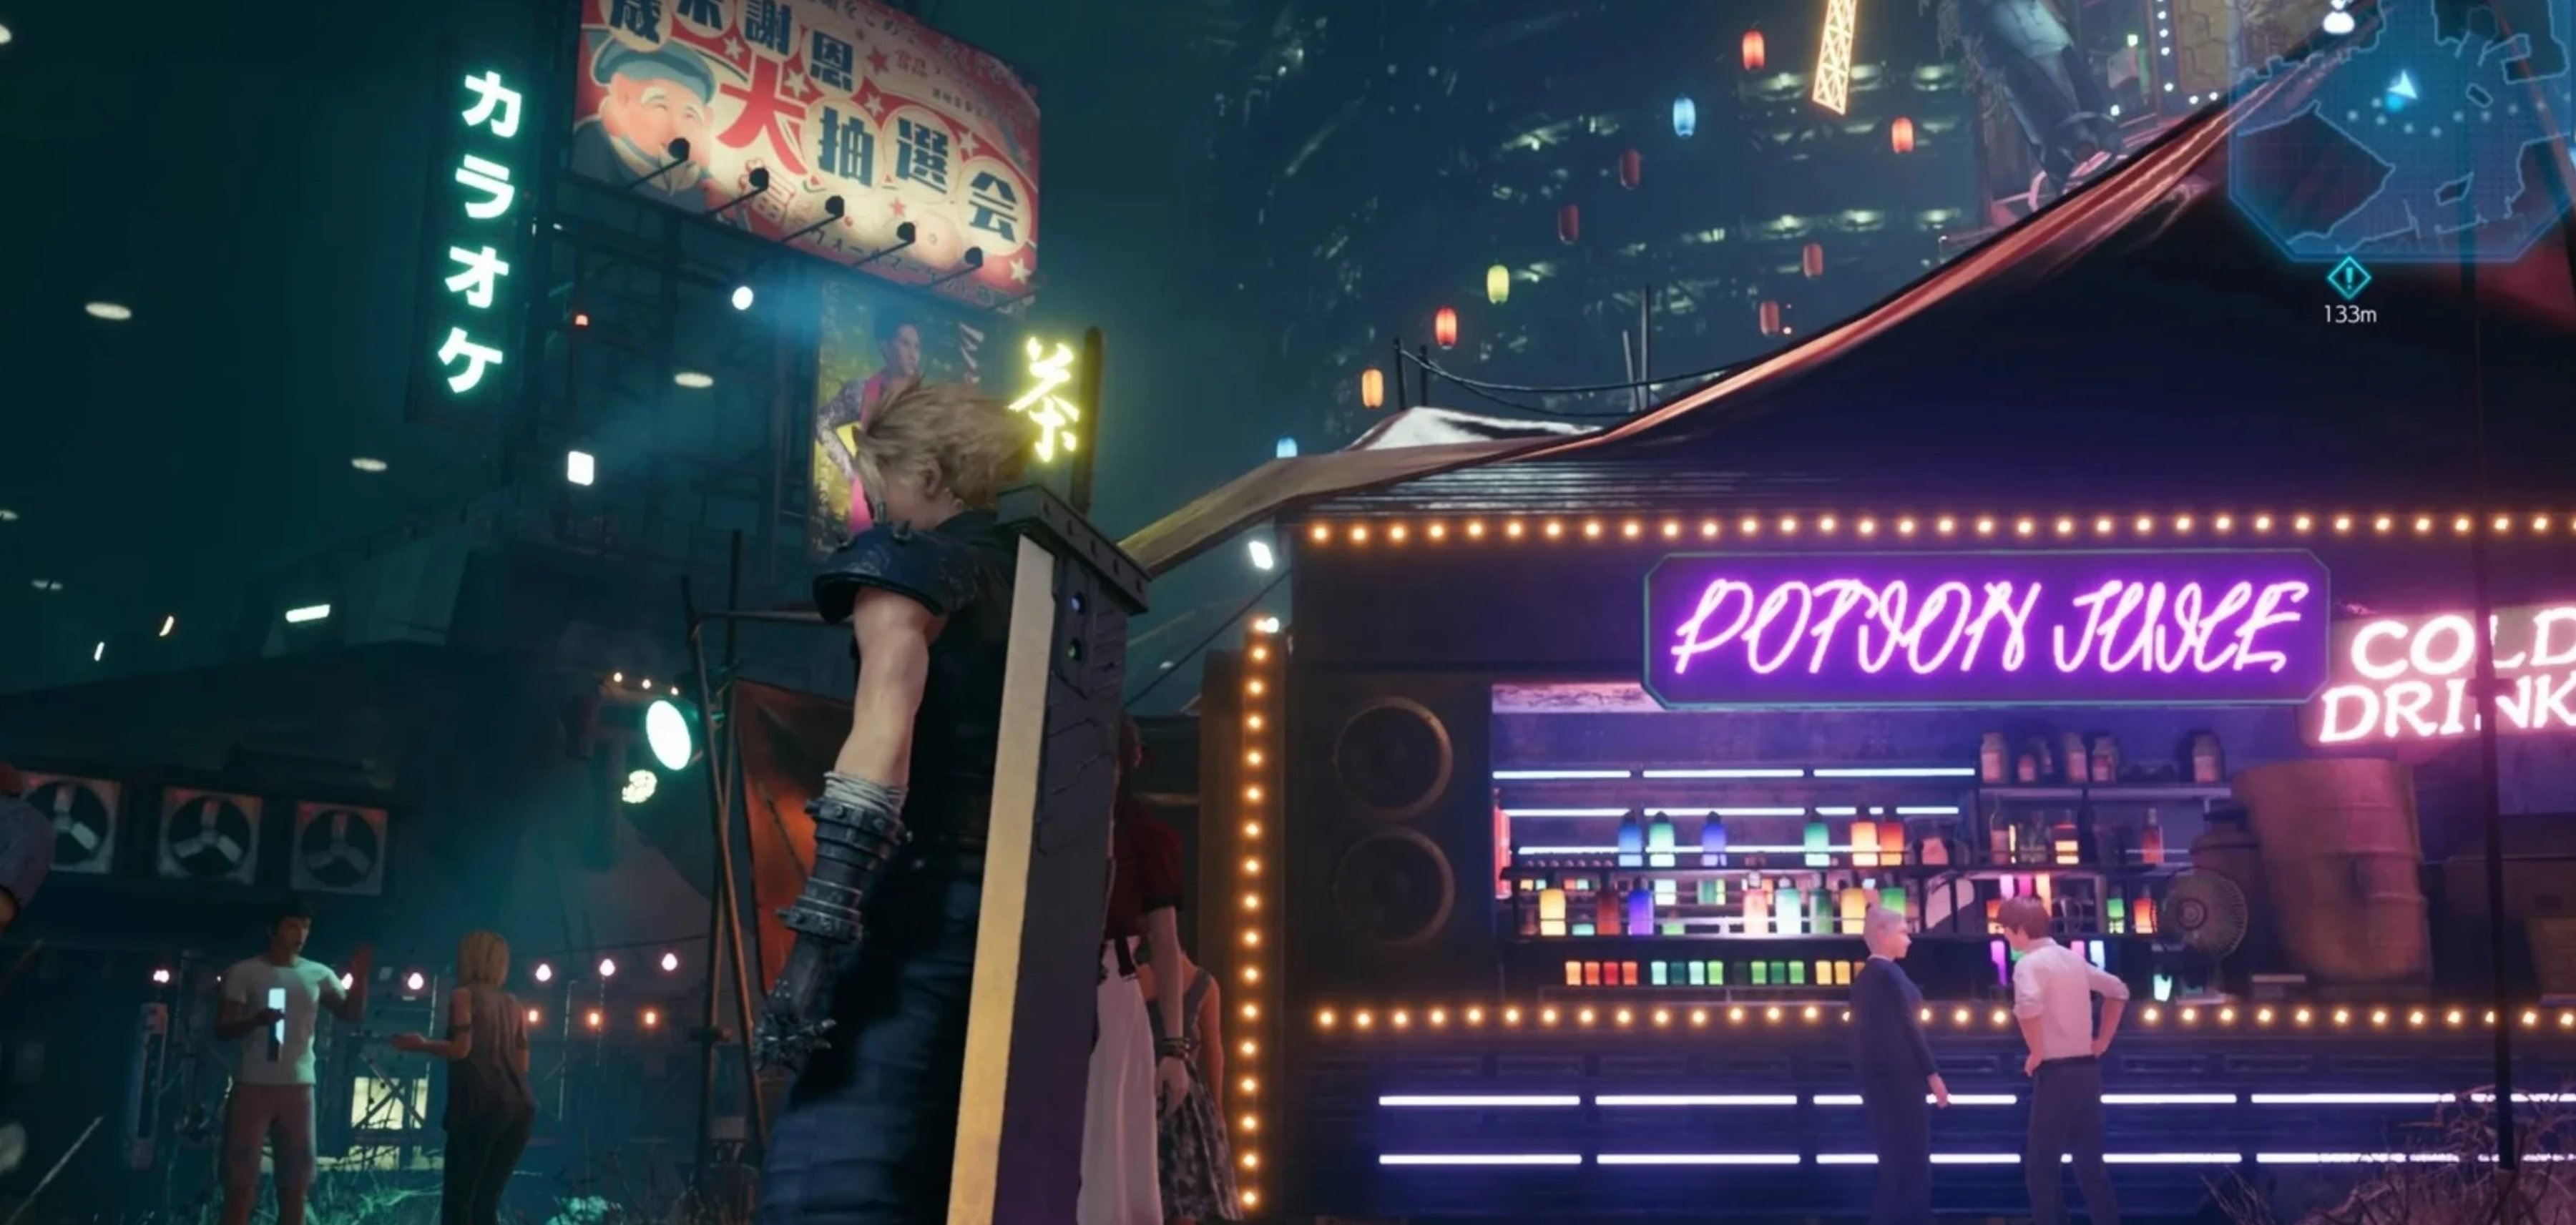 Final Fantasy VII Remake producer: 'We've really enjoyed seeing these theories and guesses of what the ending means'